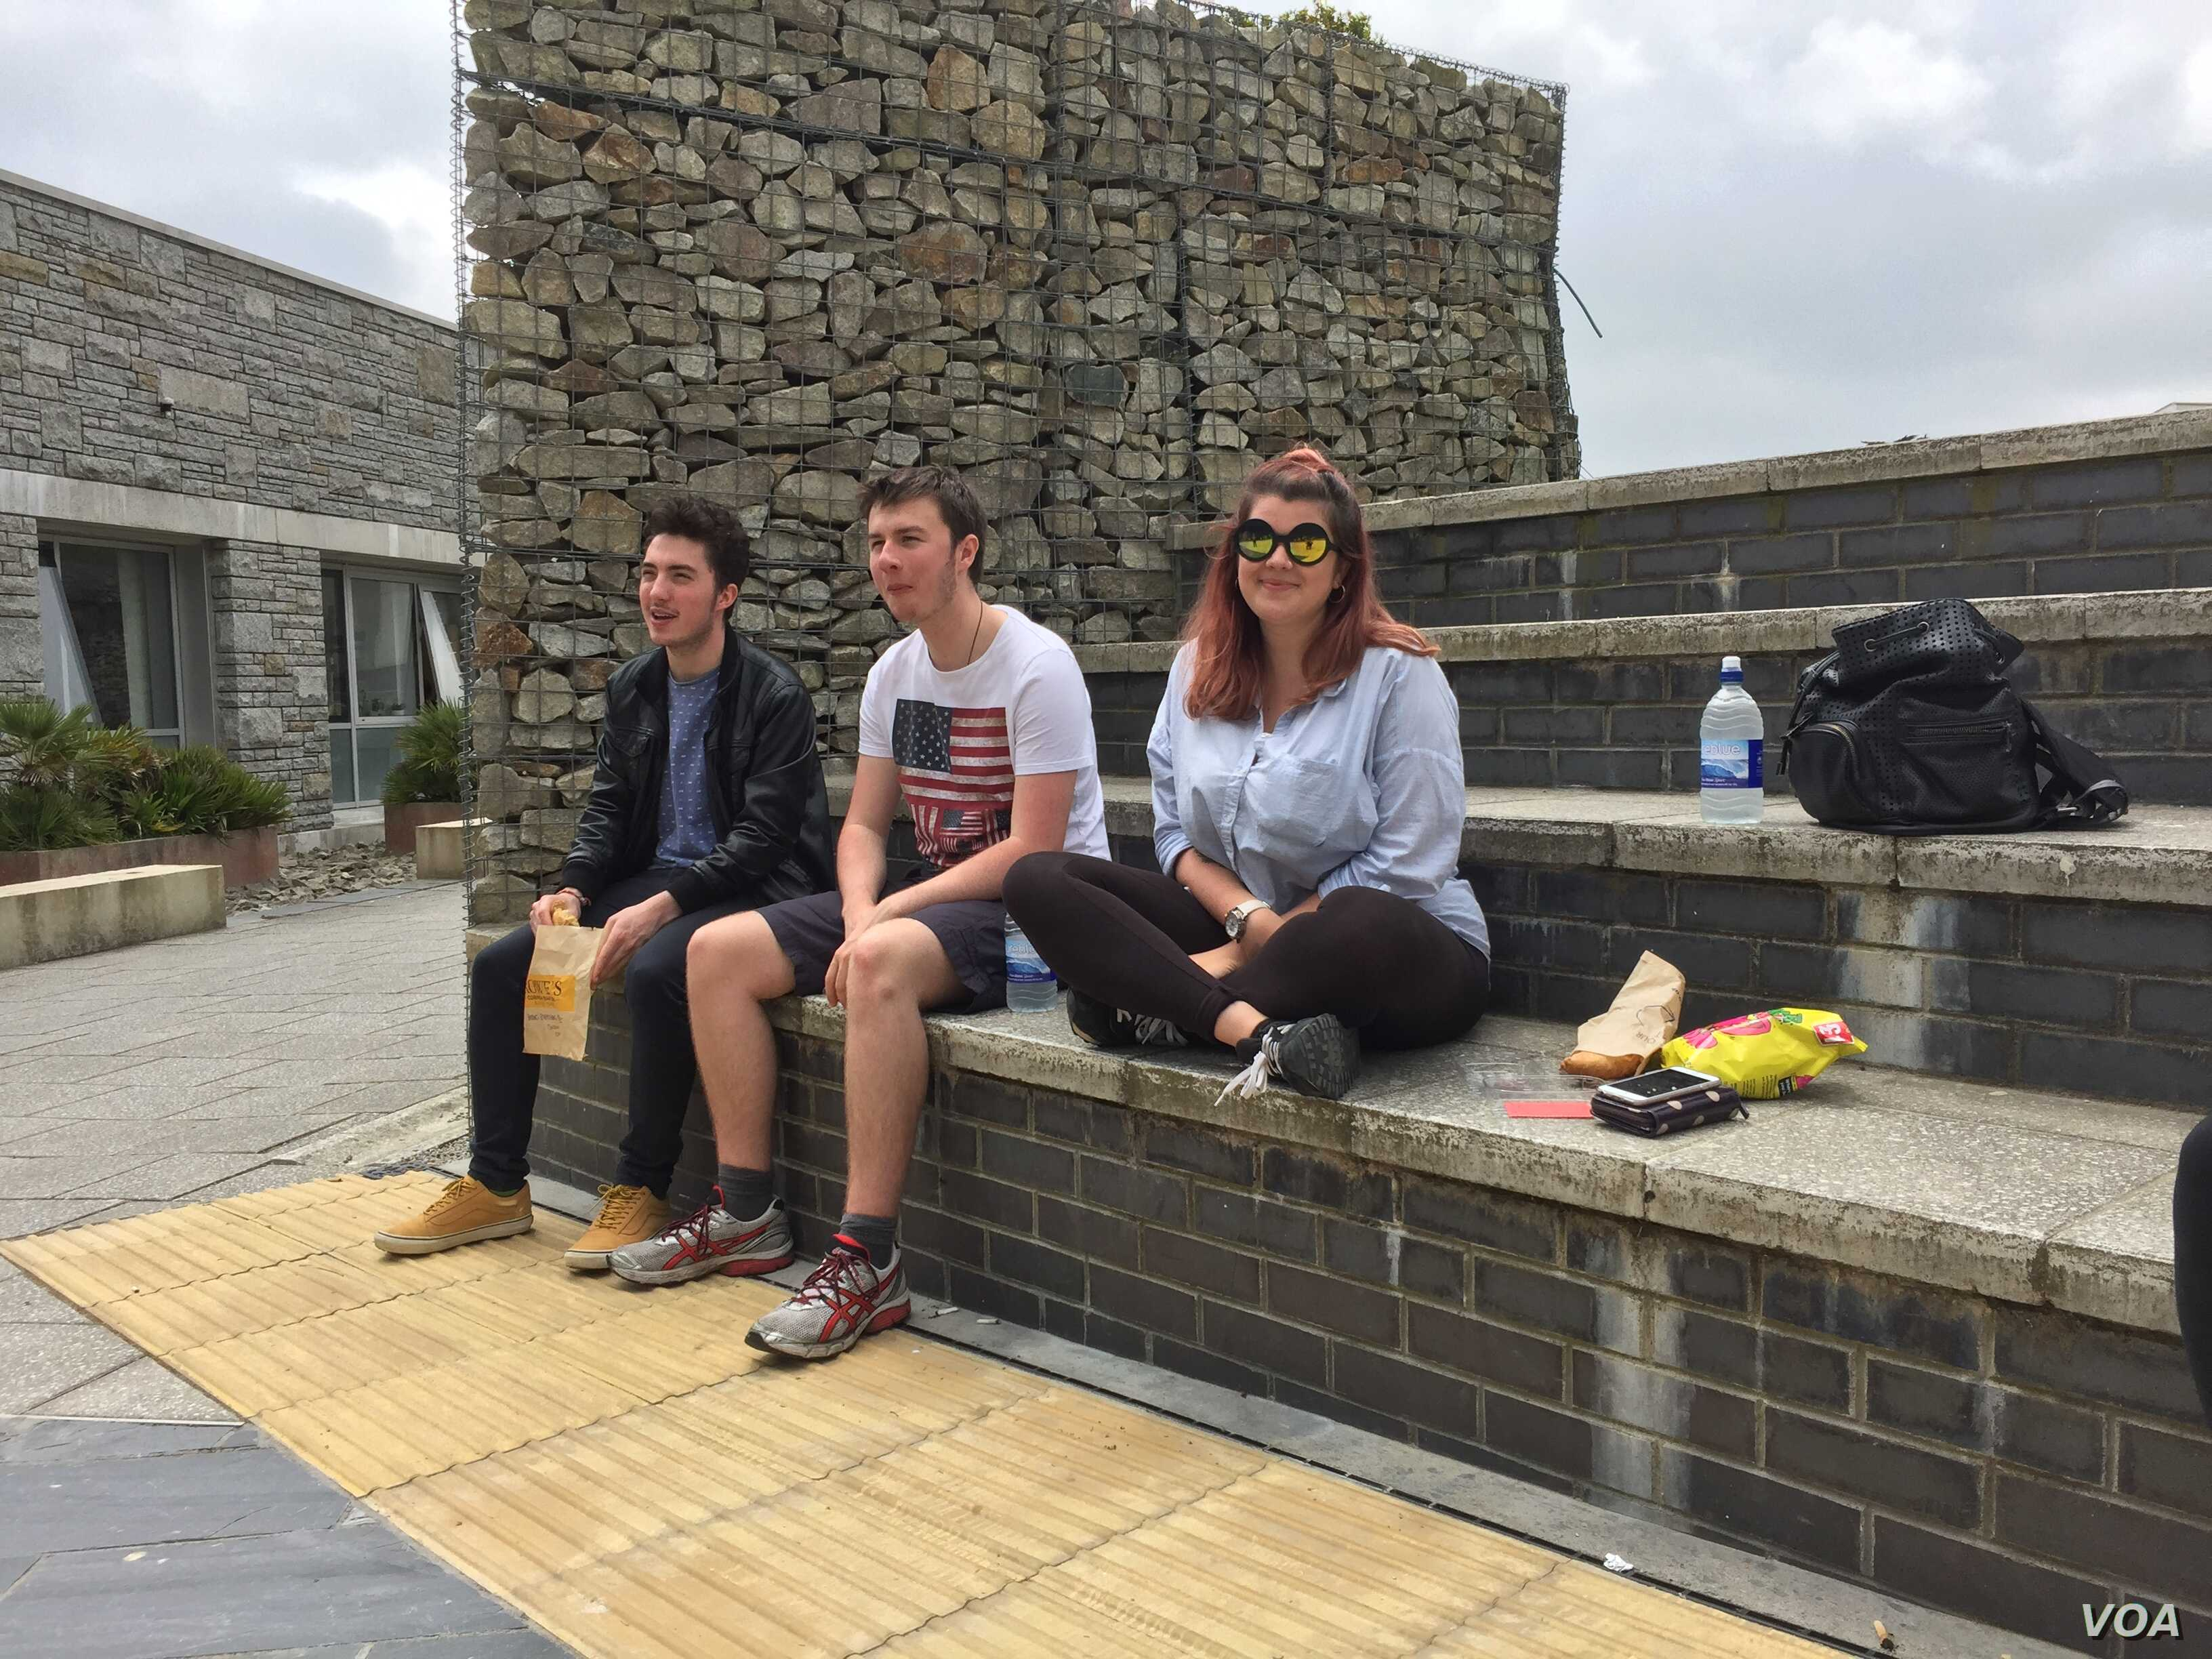 Students at Falmouth University. Many say they feel safer staying in the European Union. (L. Ramirez/VOA)